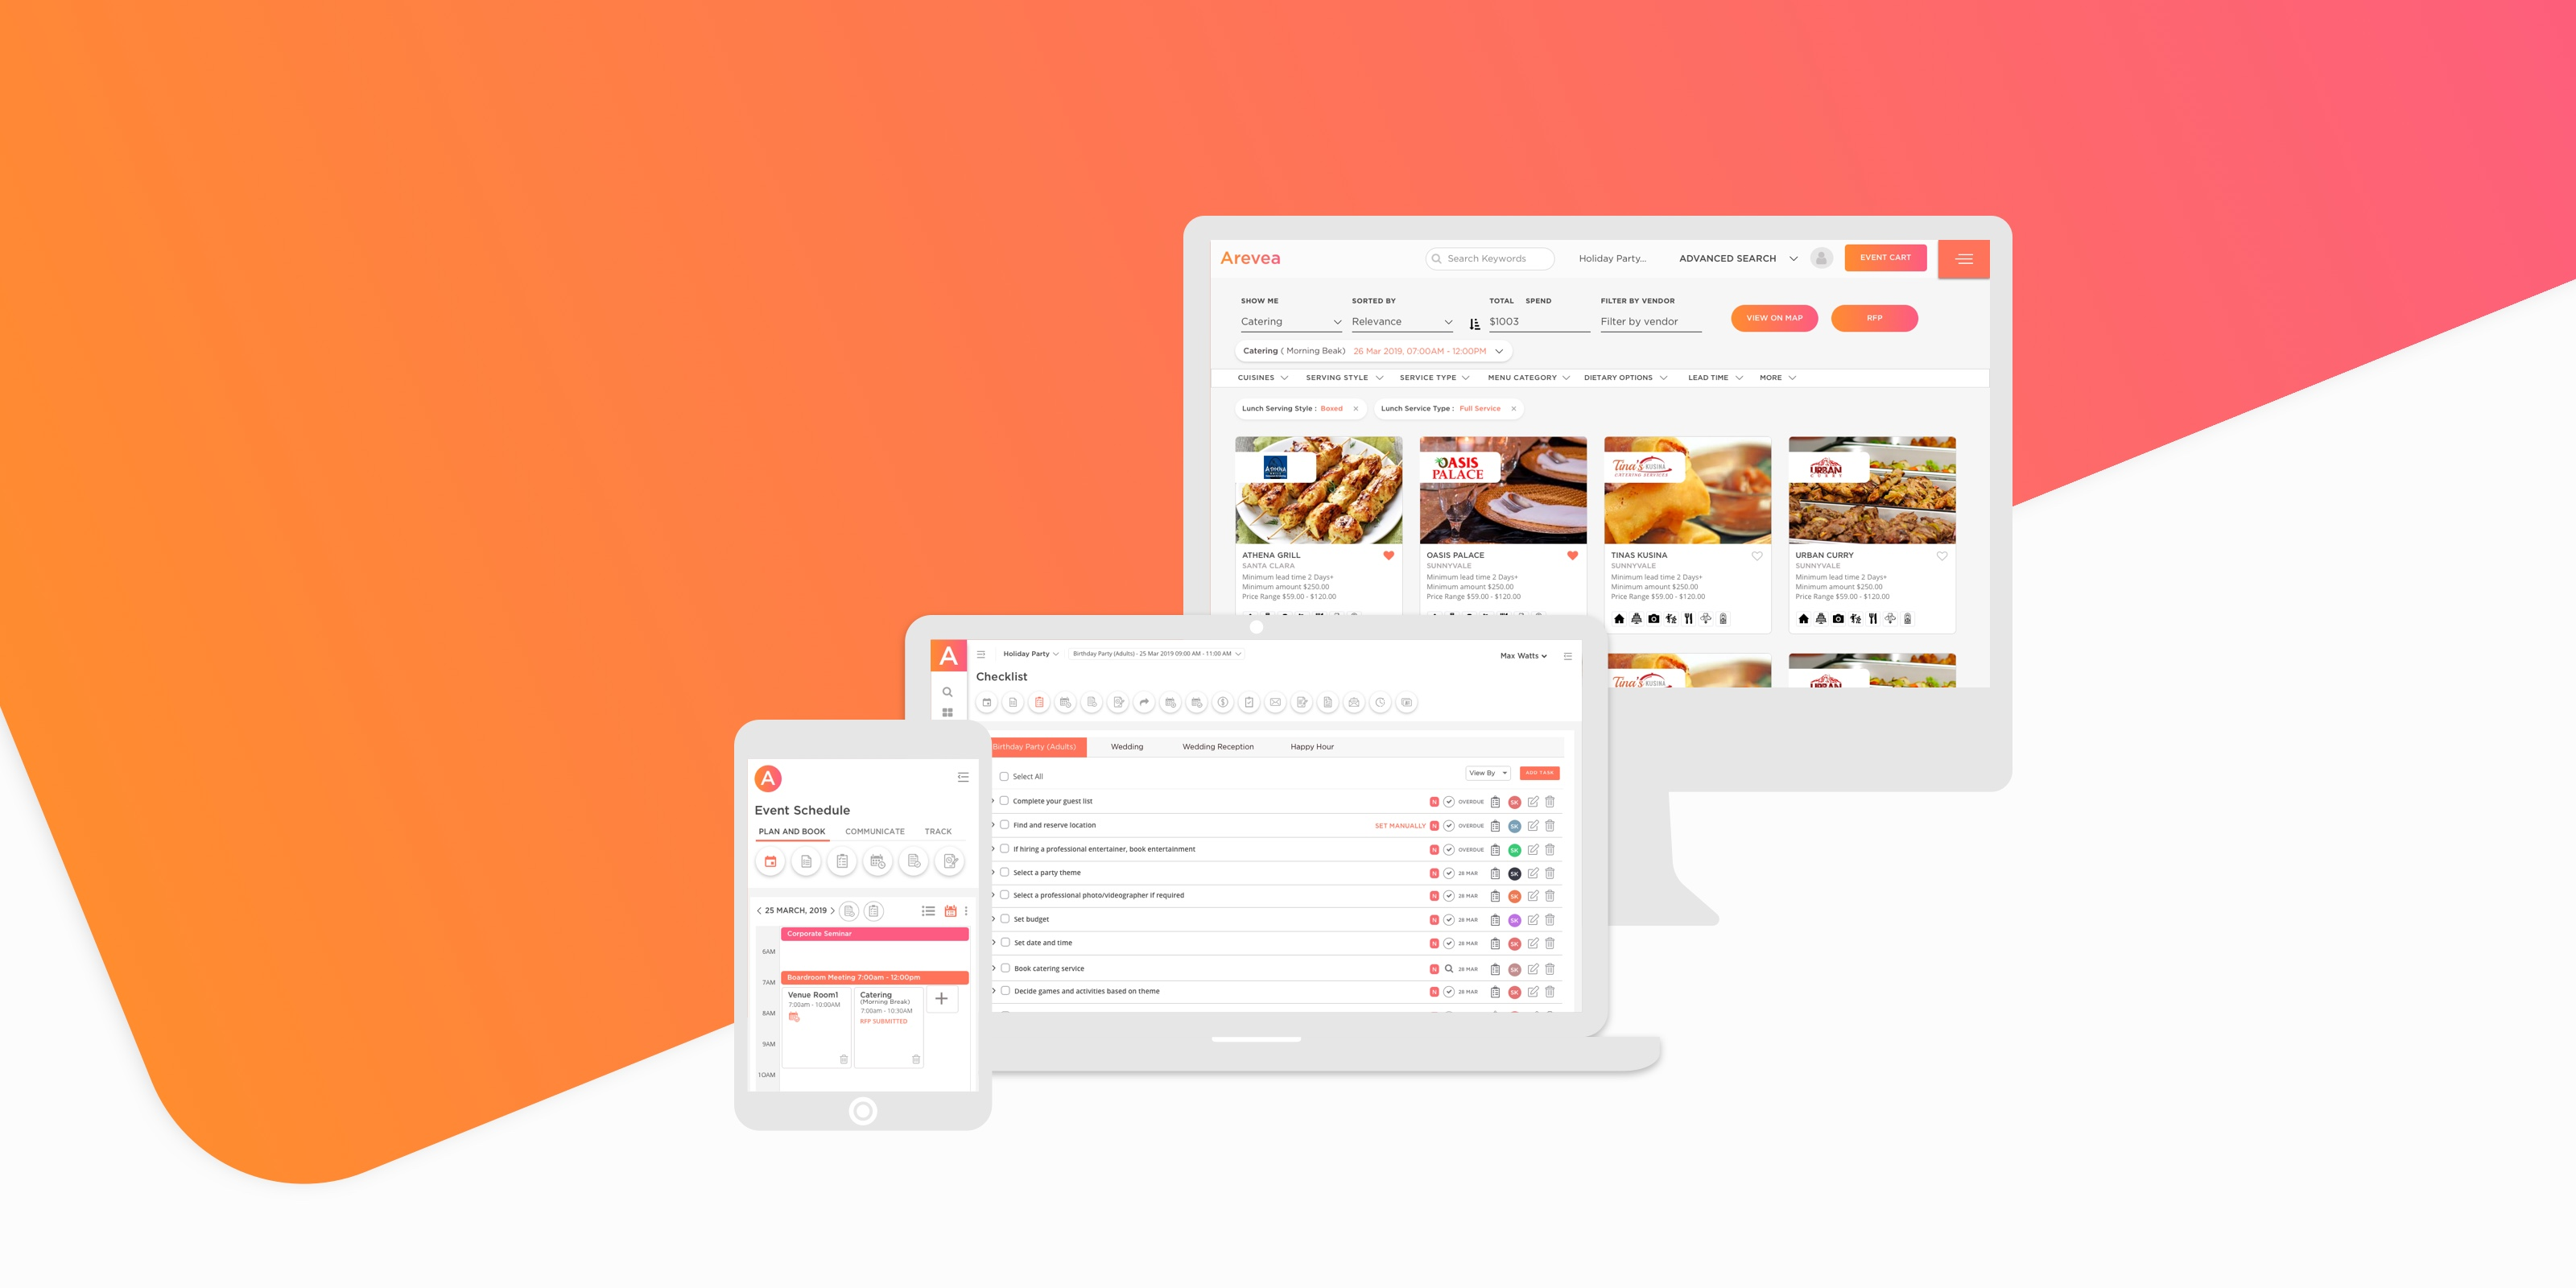 Arevea – an All-In-One Event Management Platform